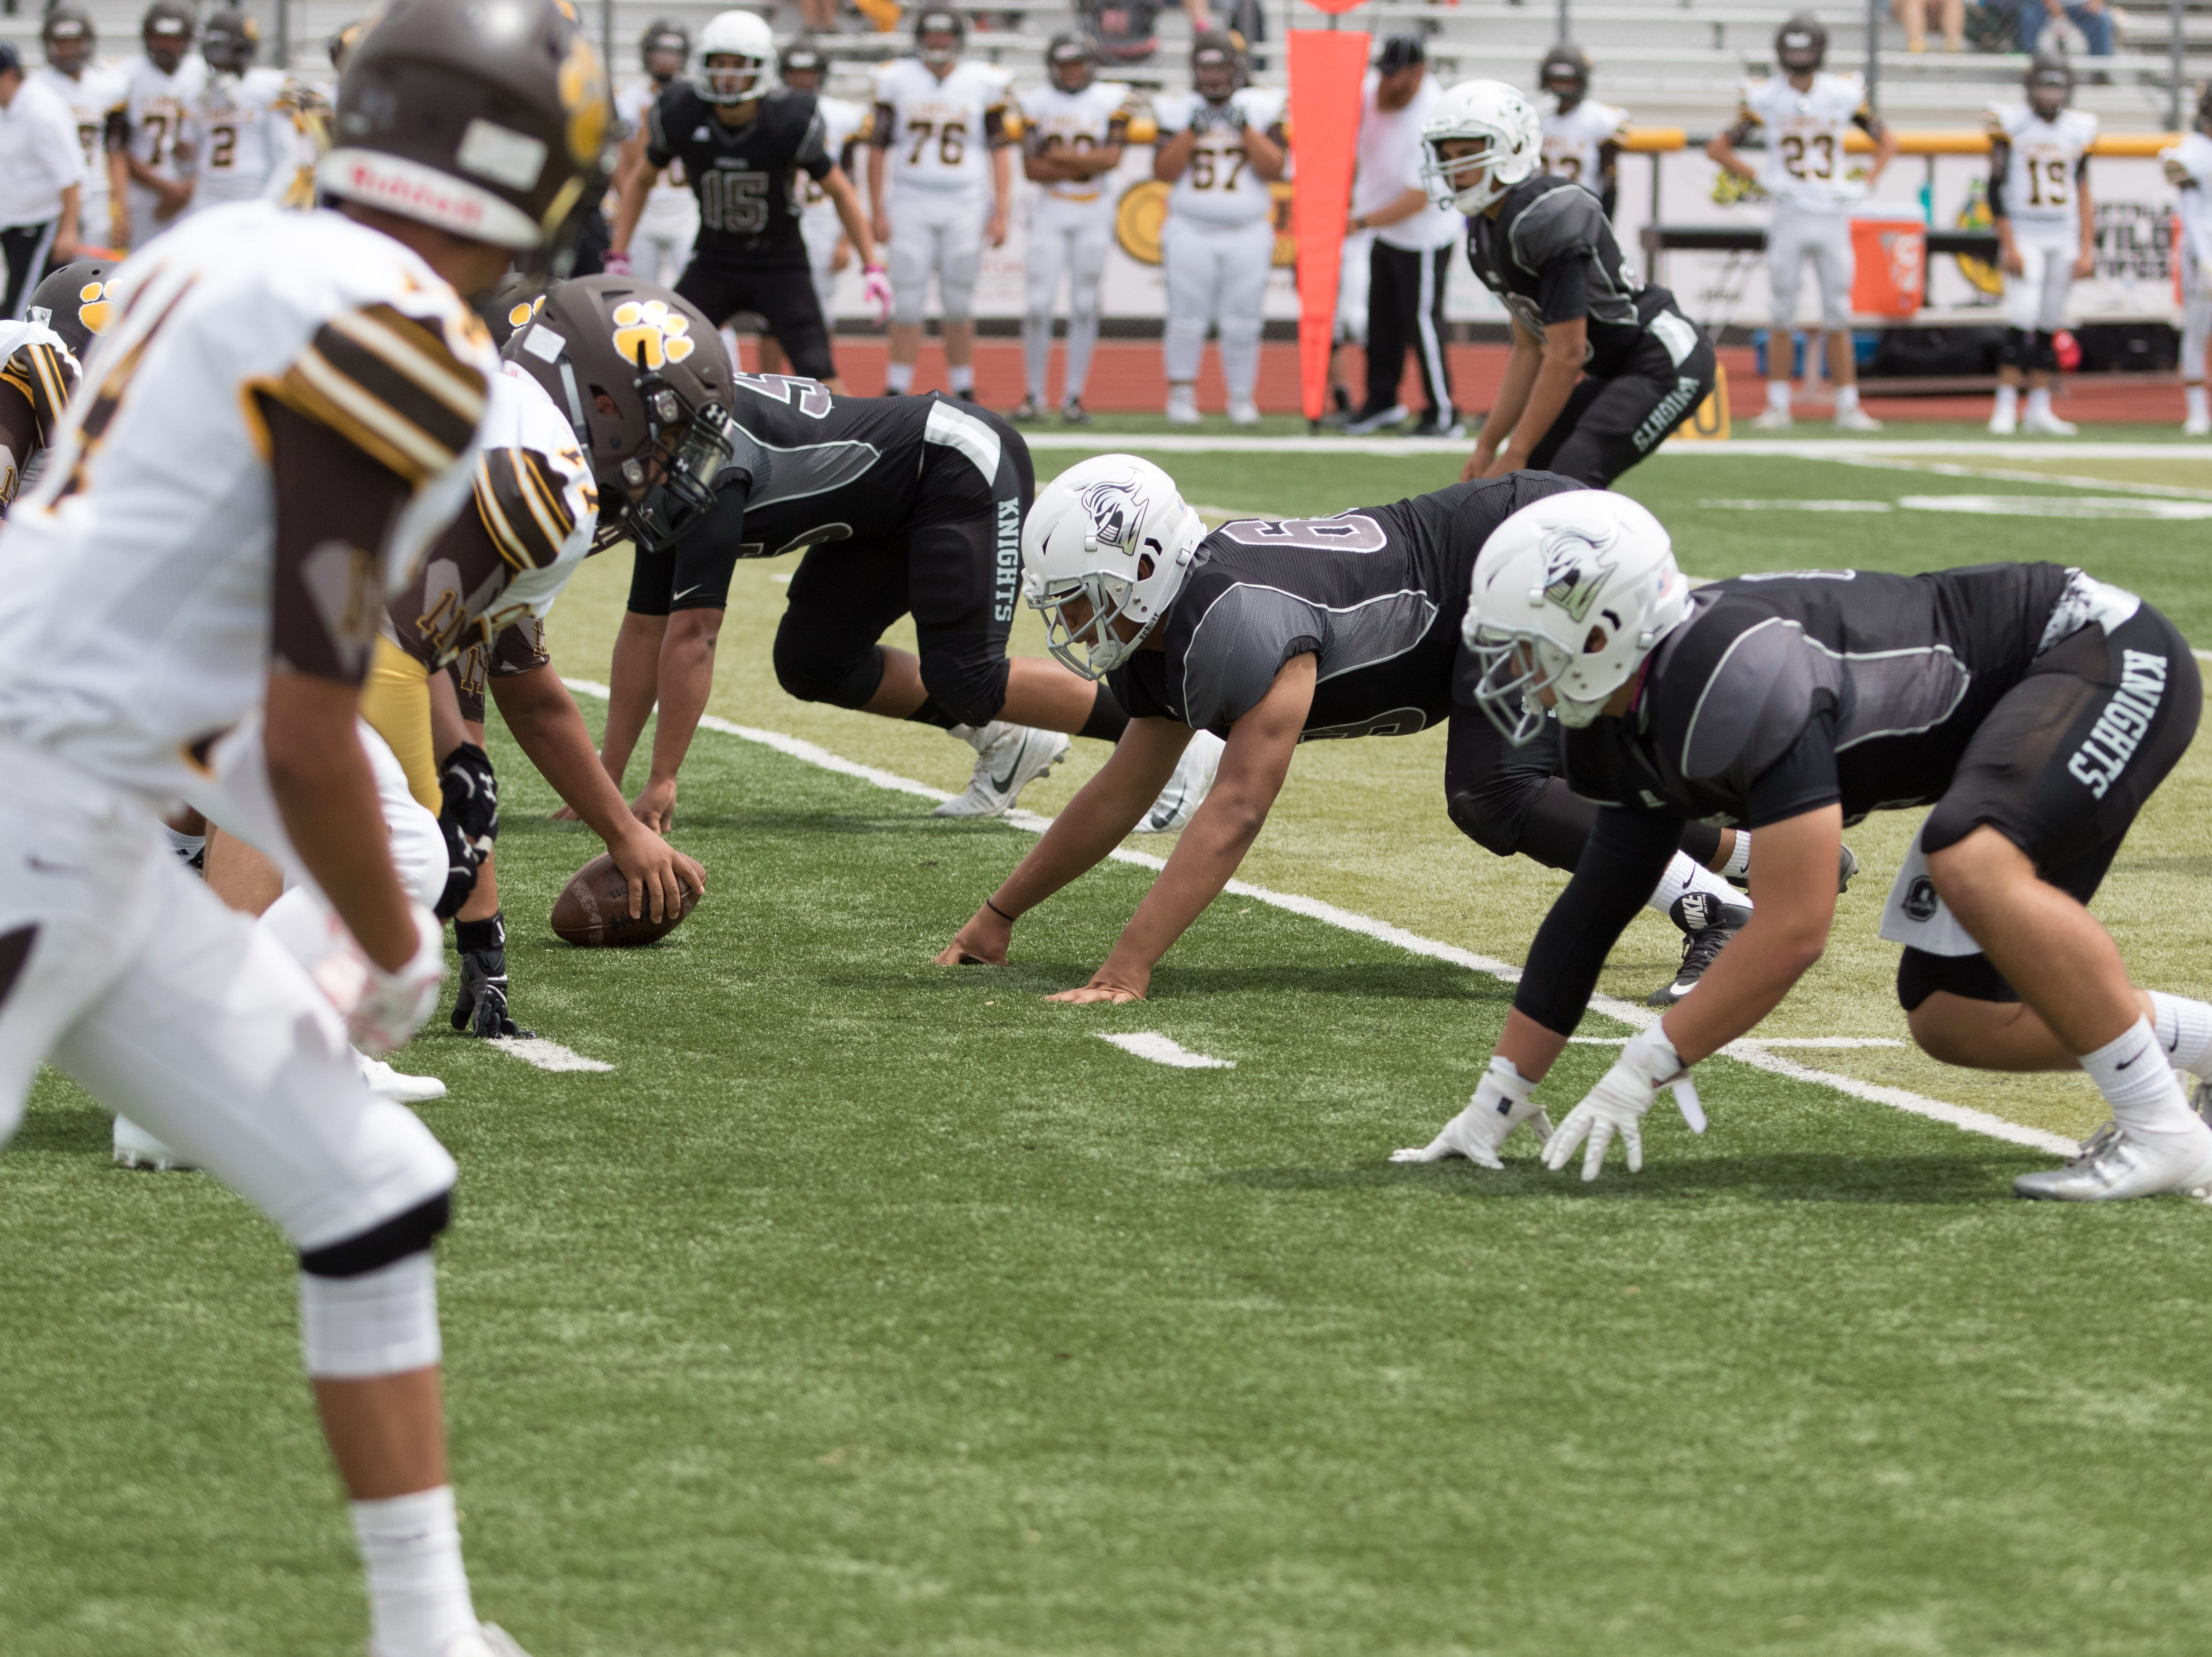 The Onate defense gets set for the hiked ball during boys prep football game against Cibola on September 1, 2018.